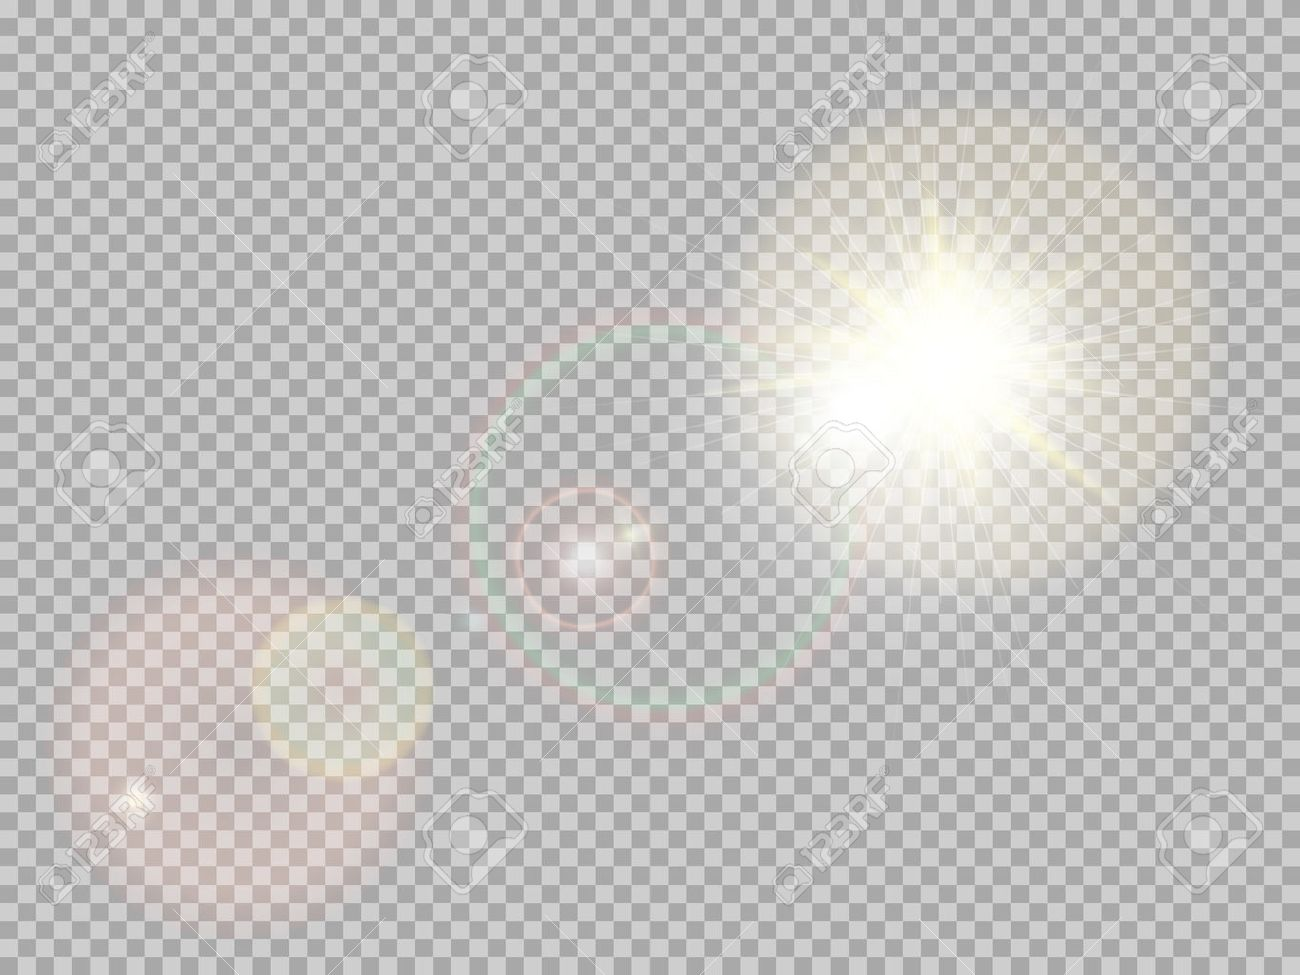 Transparent sunlight special lens flare light effect. Sun flash with rays and spotlight. - 55386296